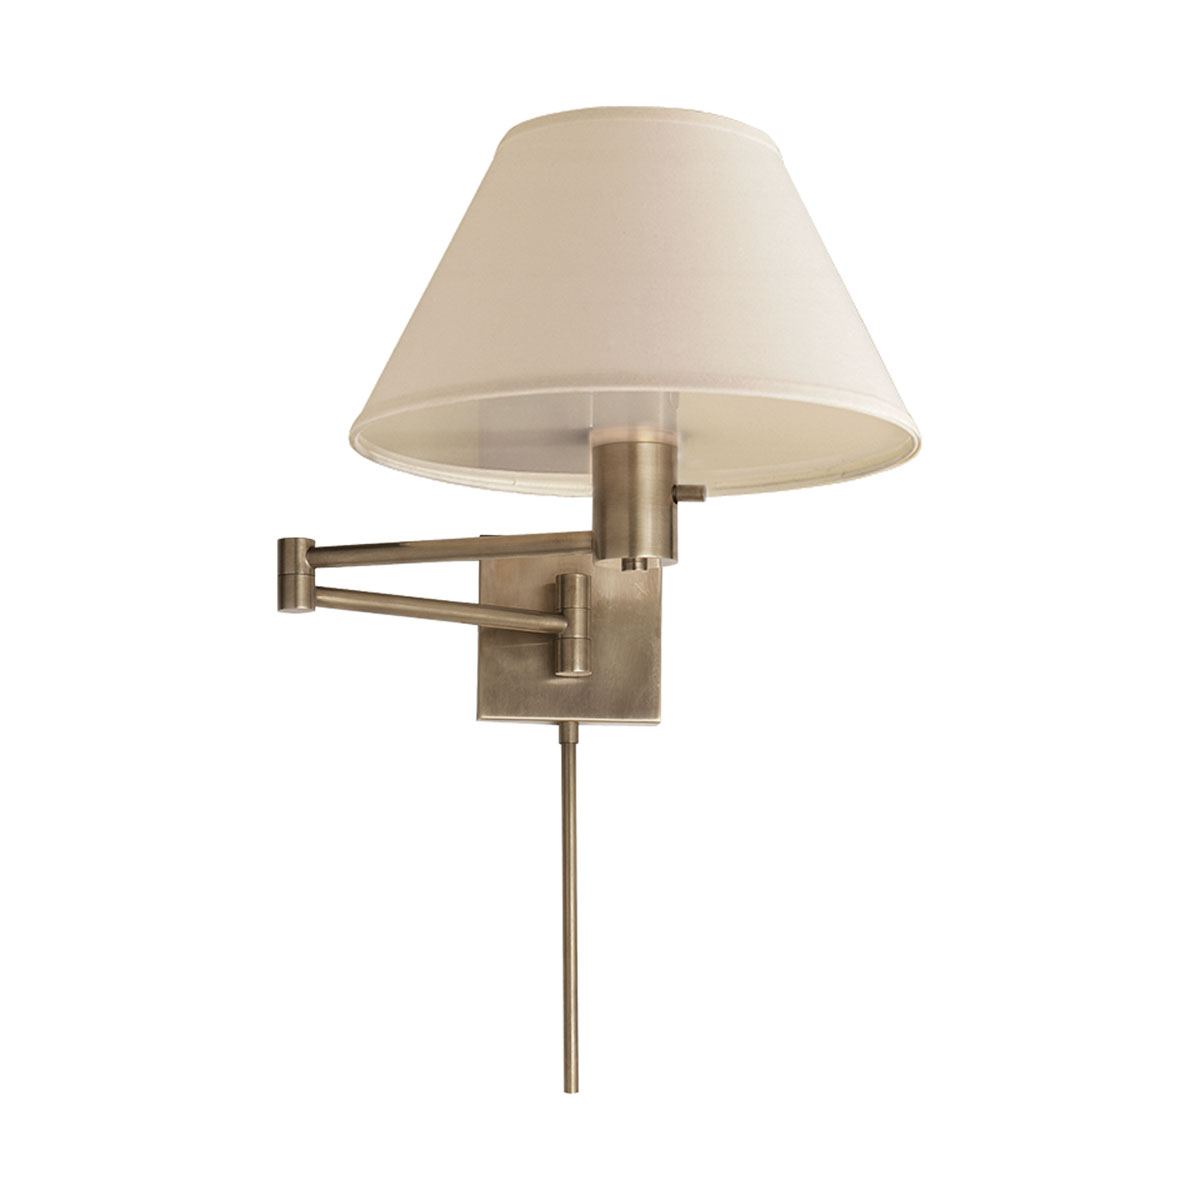 classic swing arm wall antique nickel finish linen shade - Swing Arm Wall Lamps For Bedroom